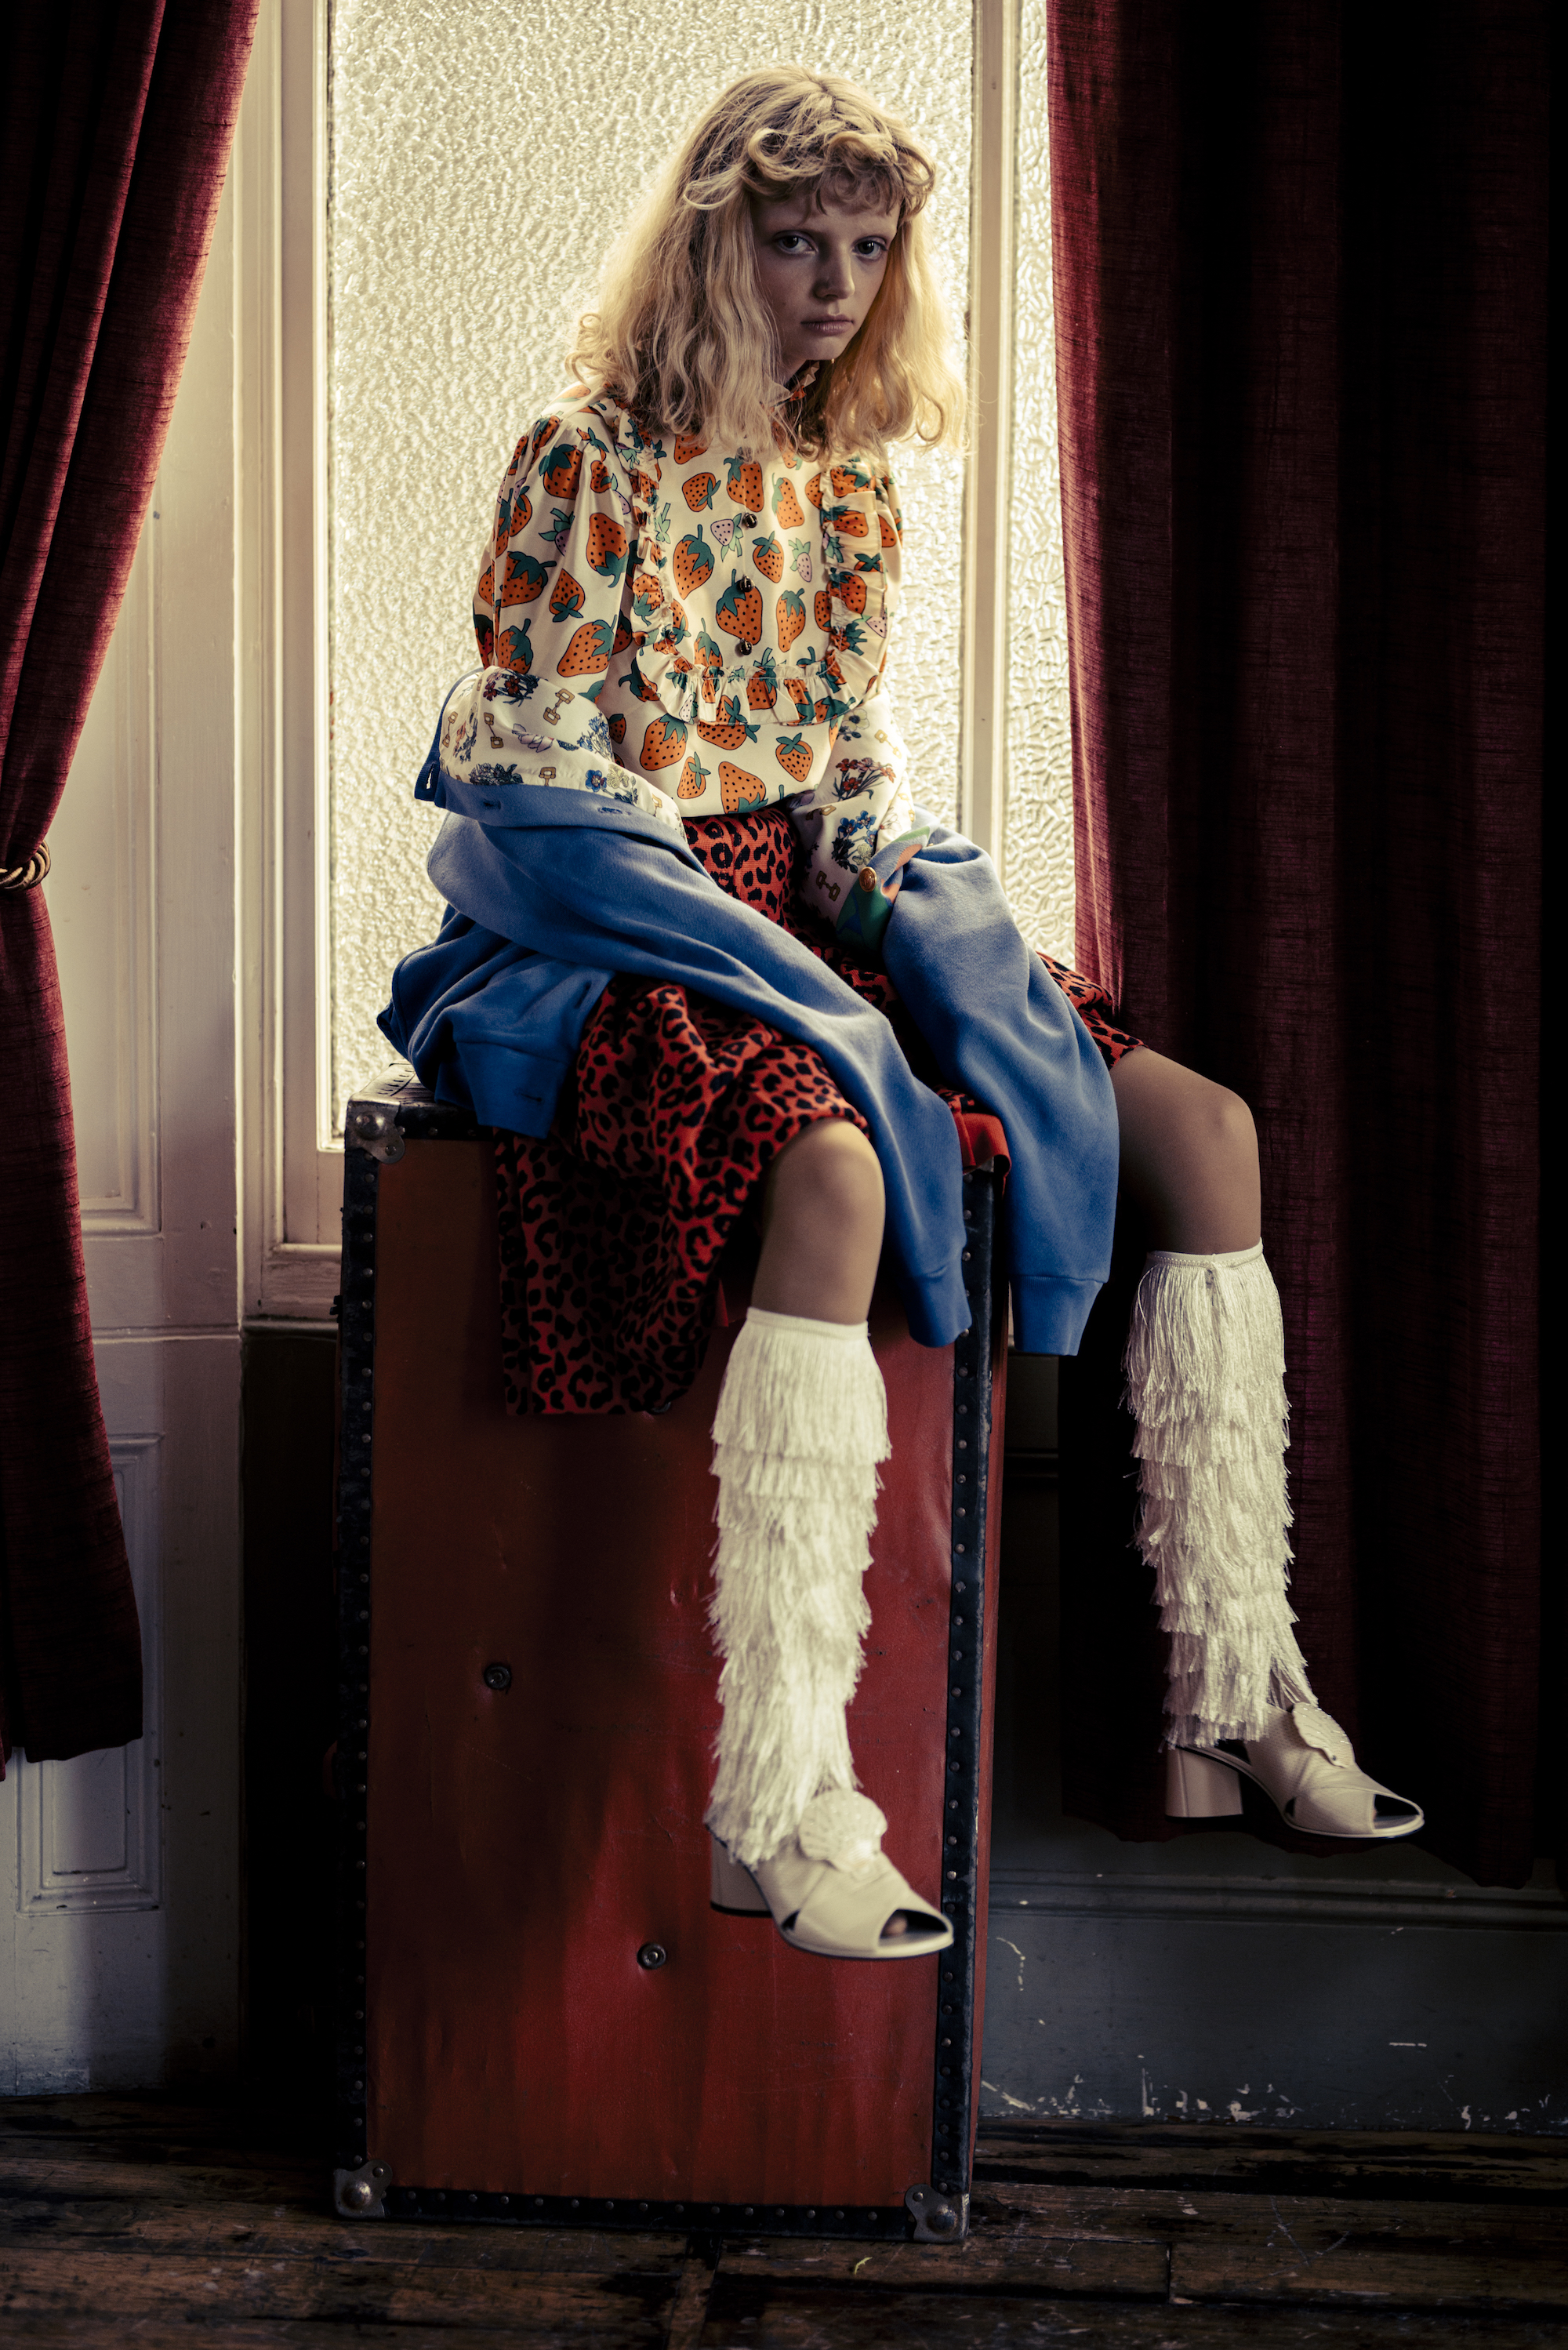 Gucci fashion editorial in the Spring 19 issue of Wonderland model in tassel boots